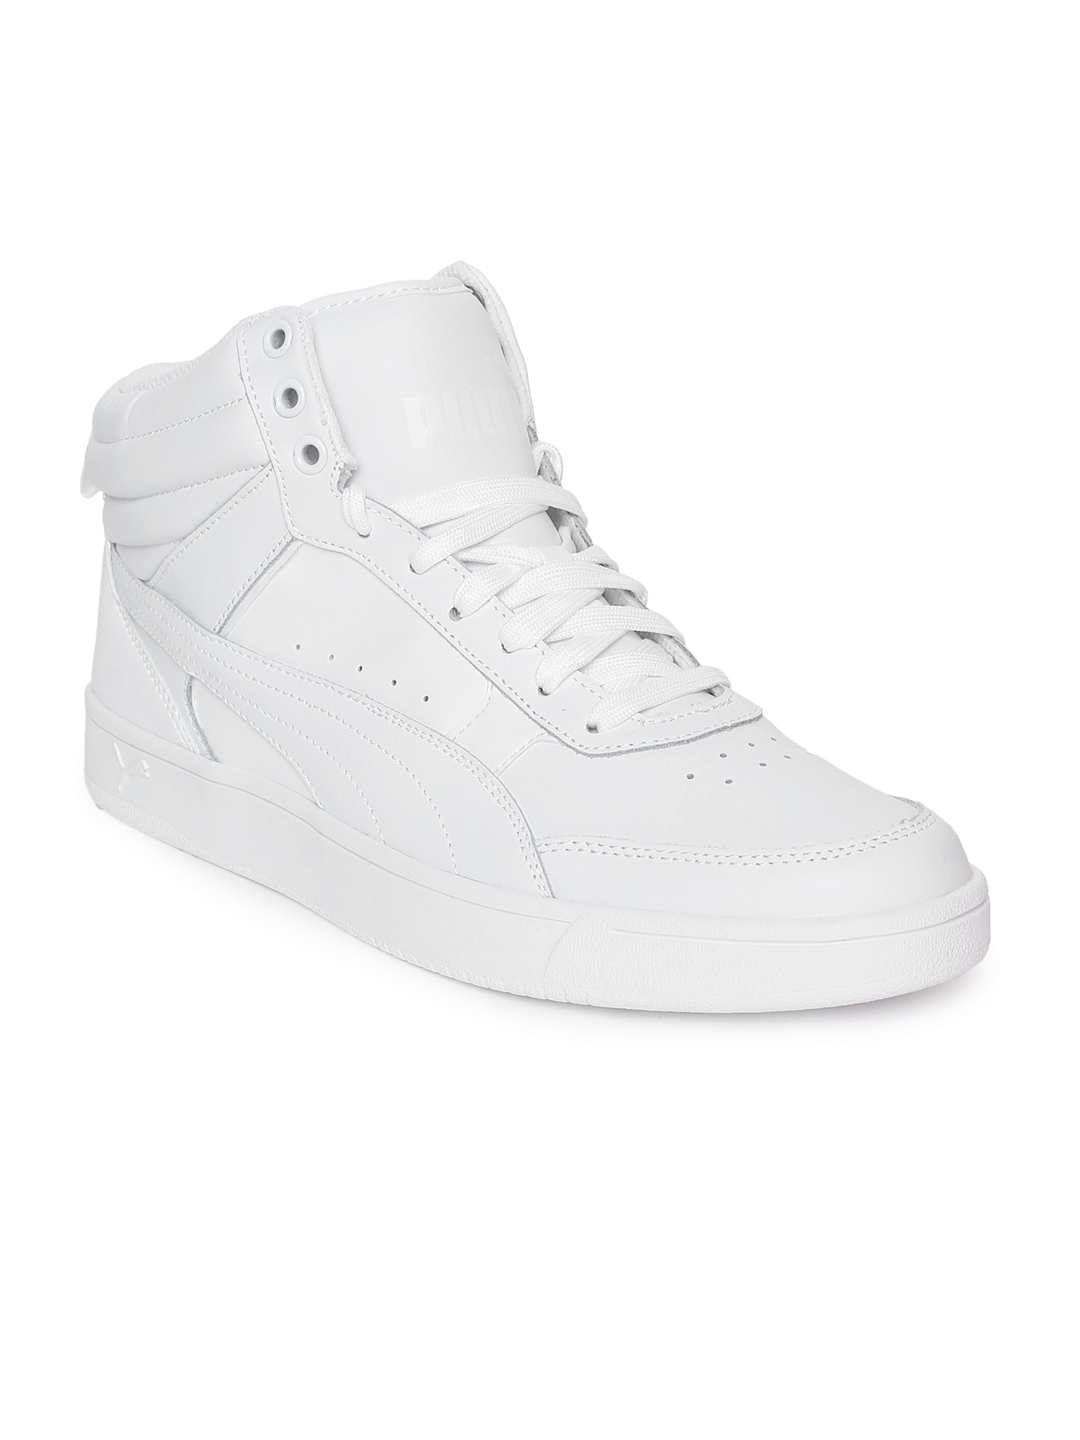 fd7d6110a37 Buy Puma Men White Rebound Street V2 L Mid Top Leather Sneakers ...